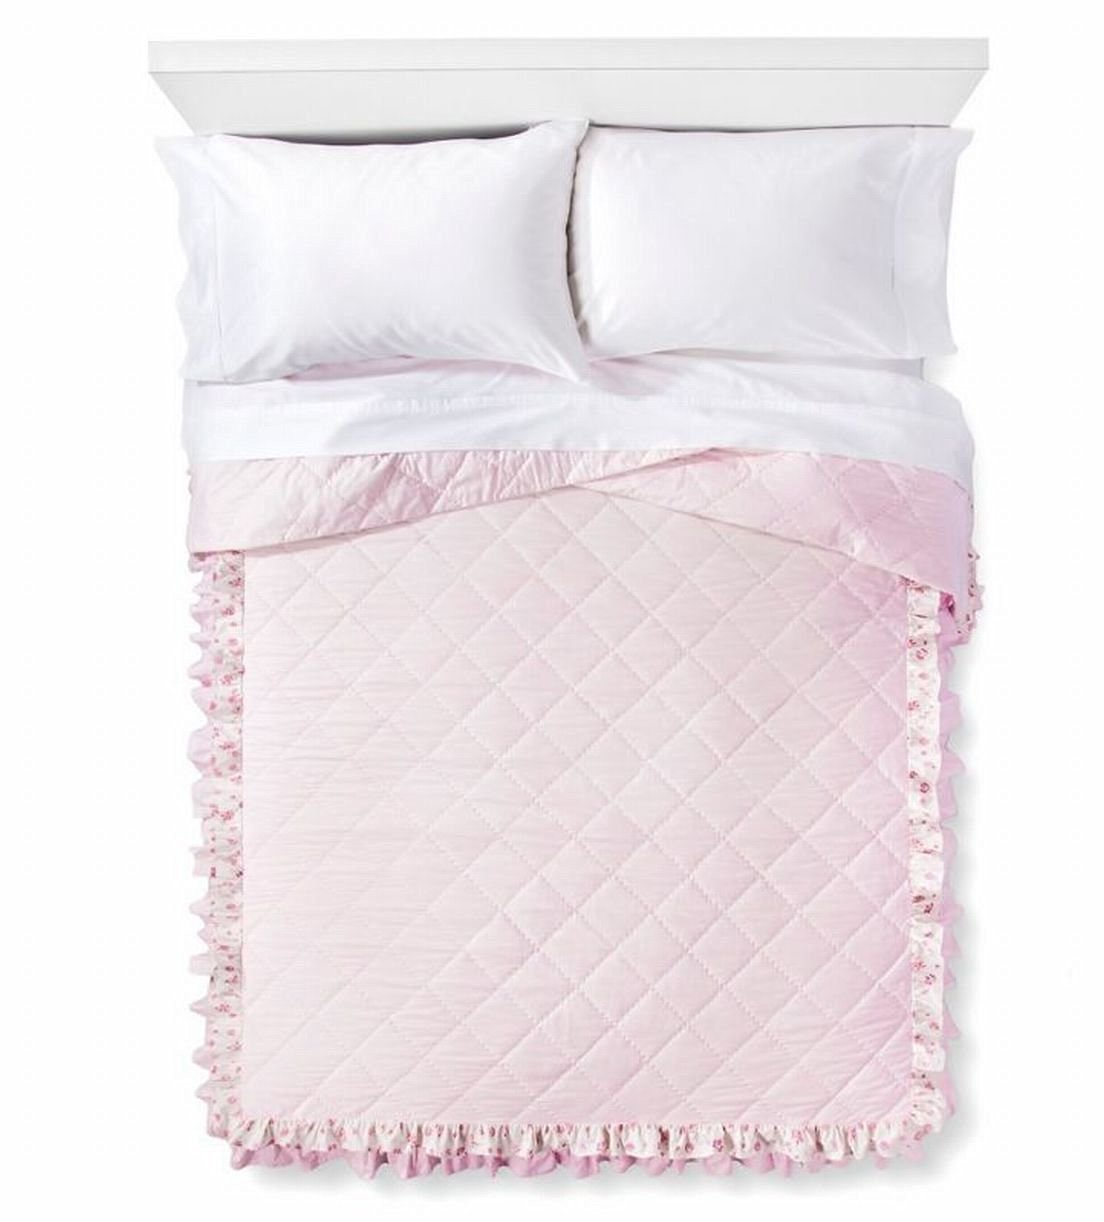 so pin quilts quilt whitecharme is pretty chic and pinterest shabby this sew